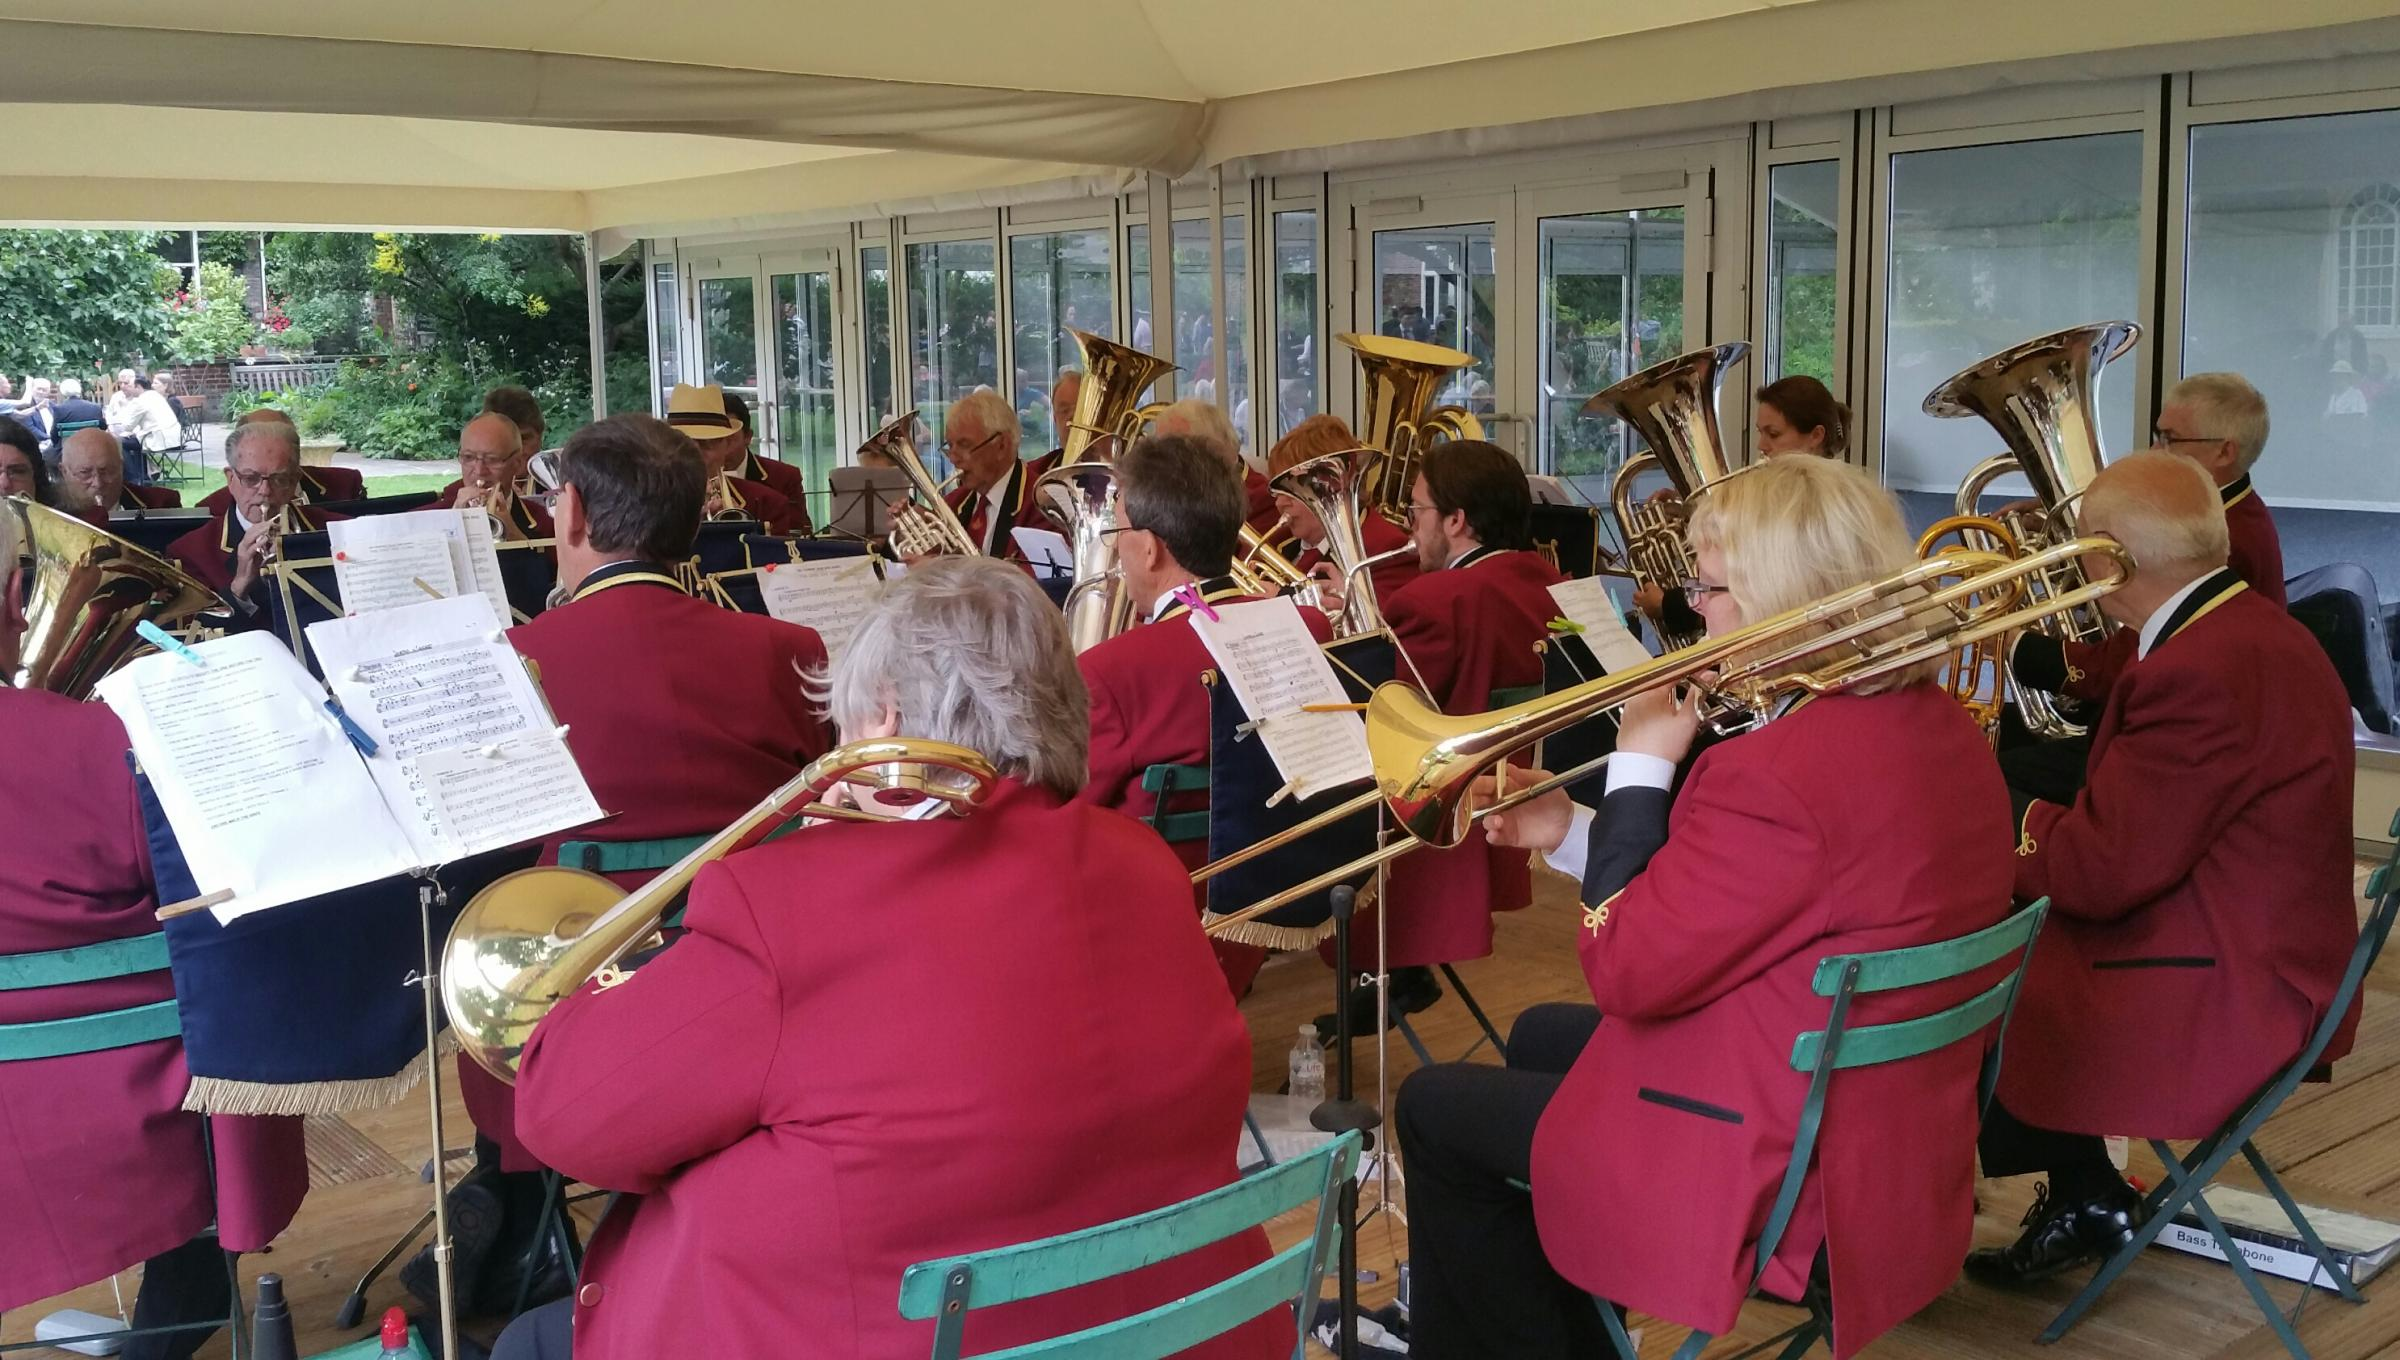 Cobham Band presents Music from the 50s, 60s and 70s